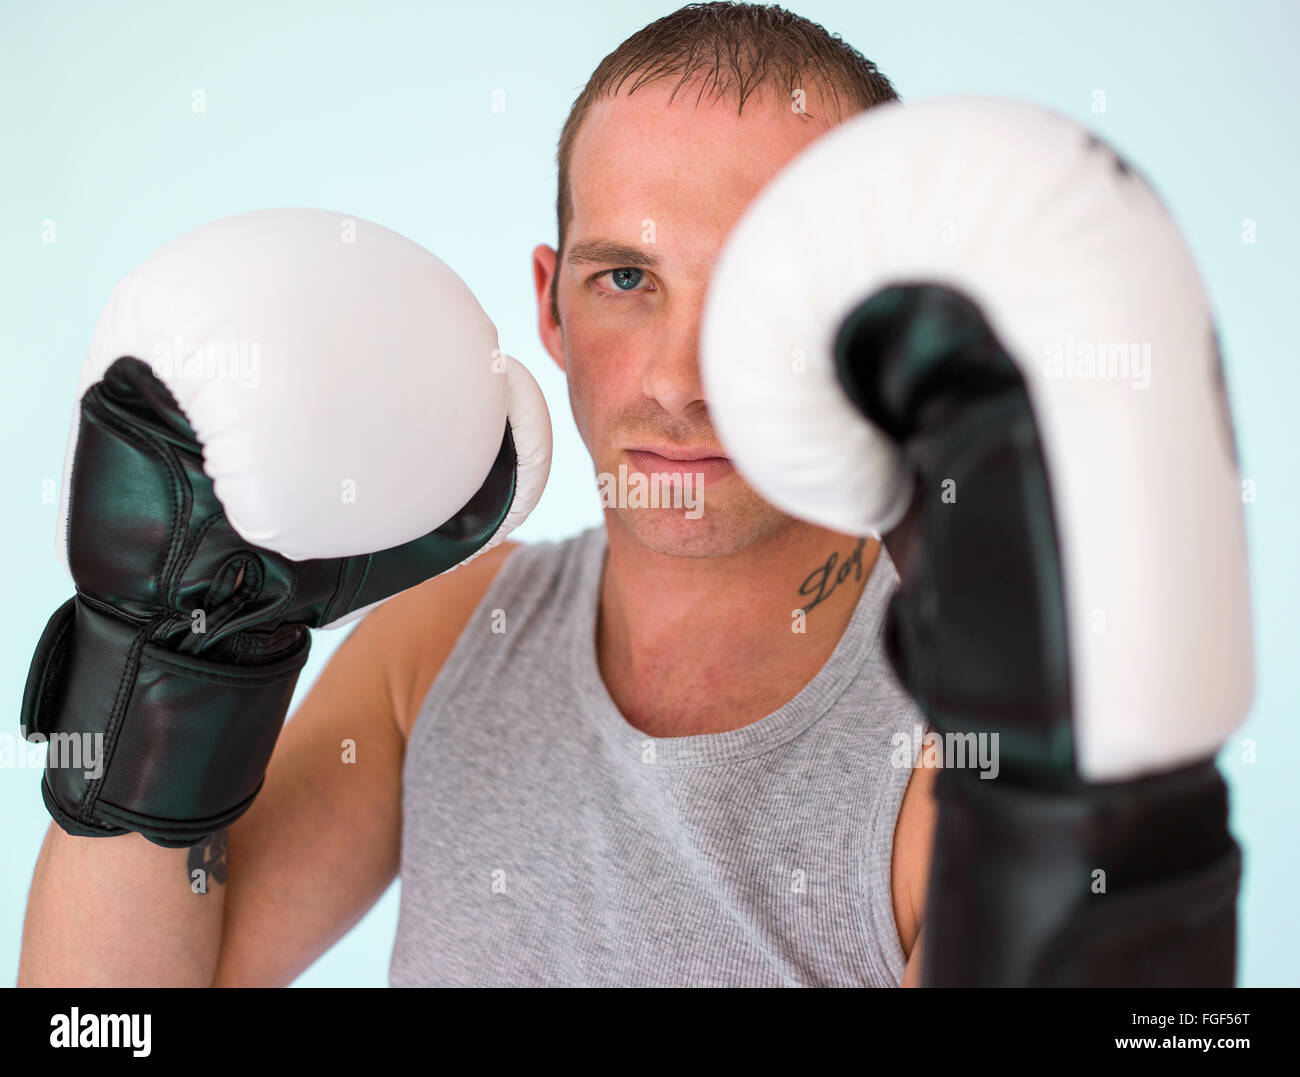 Man wearing boxing gloves about to fight Stock Photo